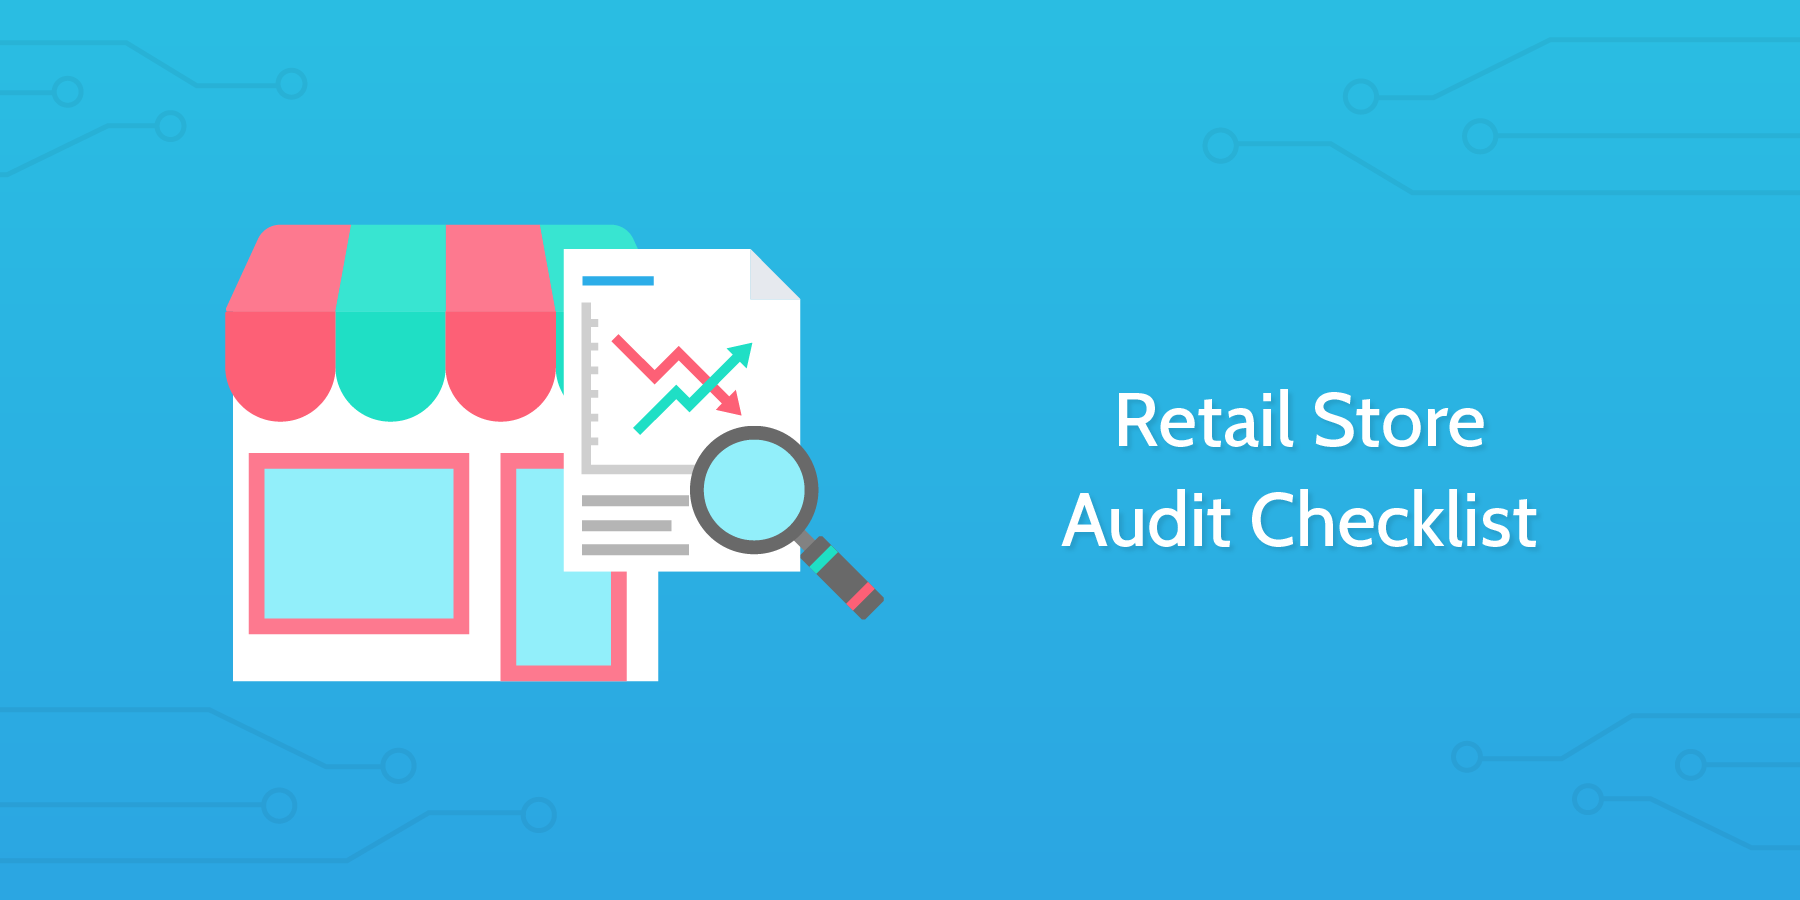 Audit Procedures - Retail Store Audit Checklist